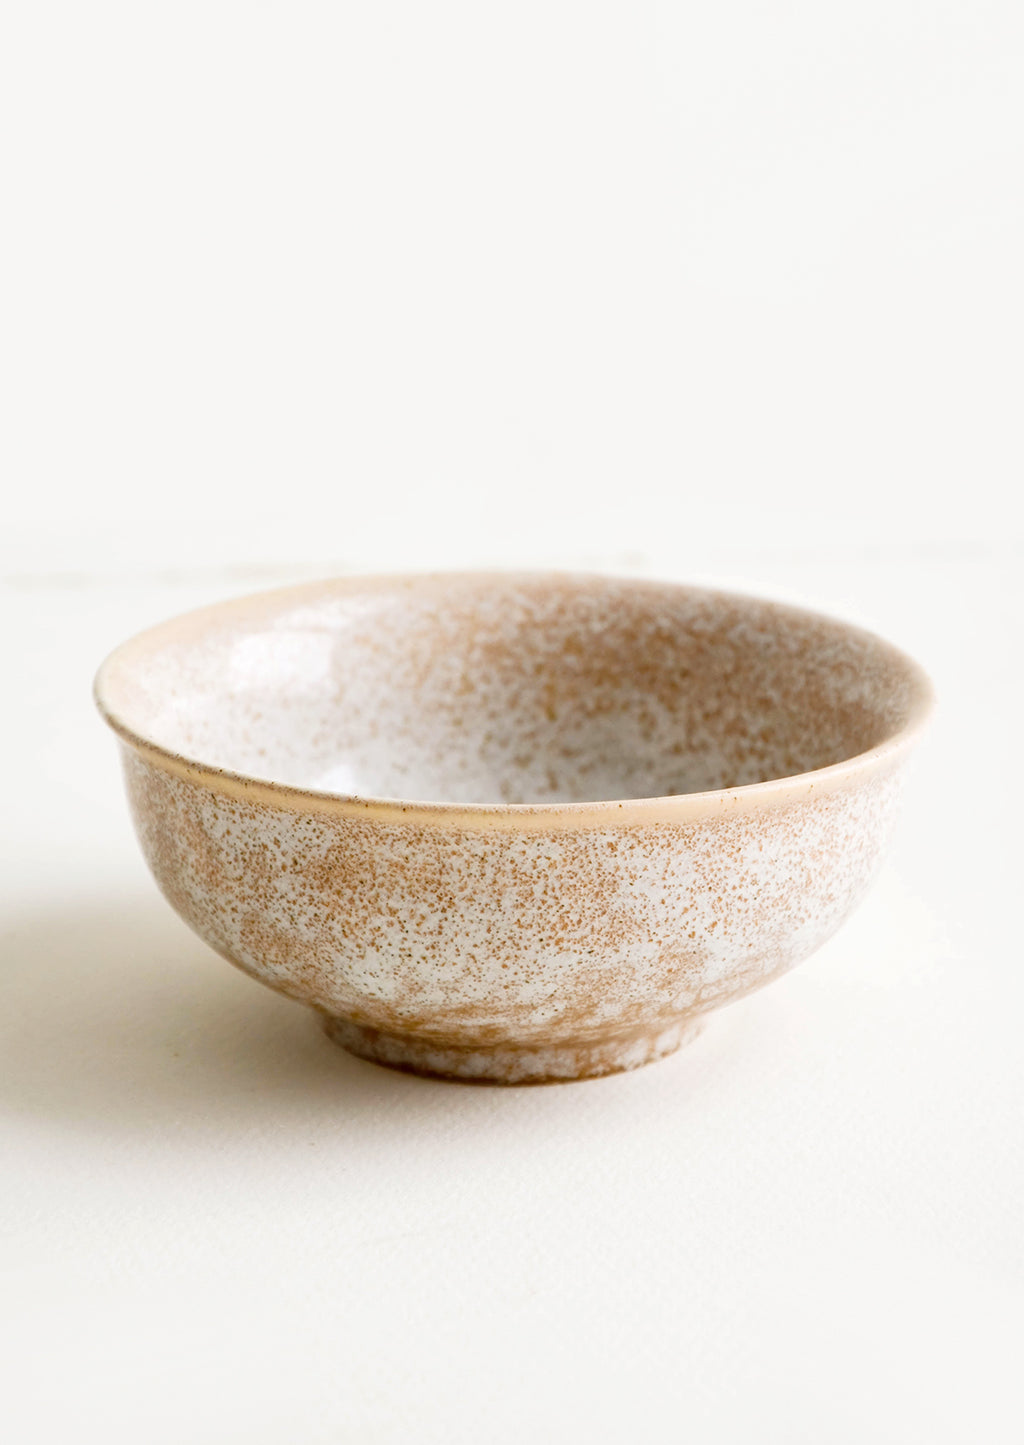 2: Small ceramic bowl with footed silhouette in reactive brown glaze